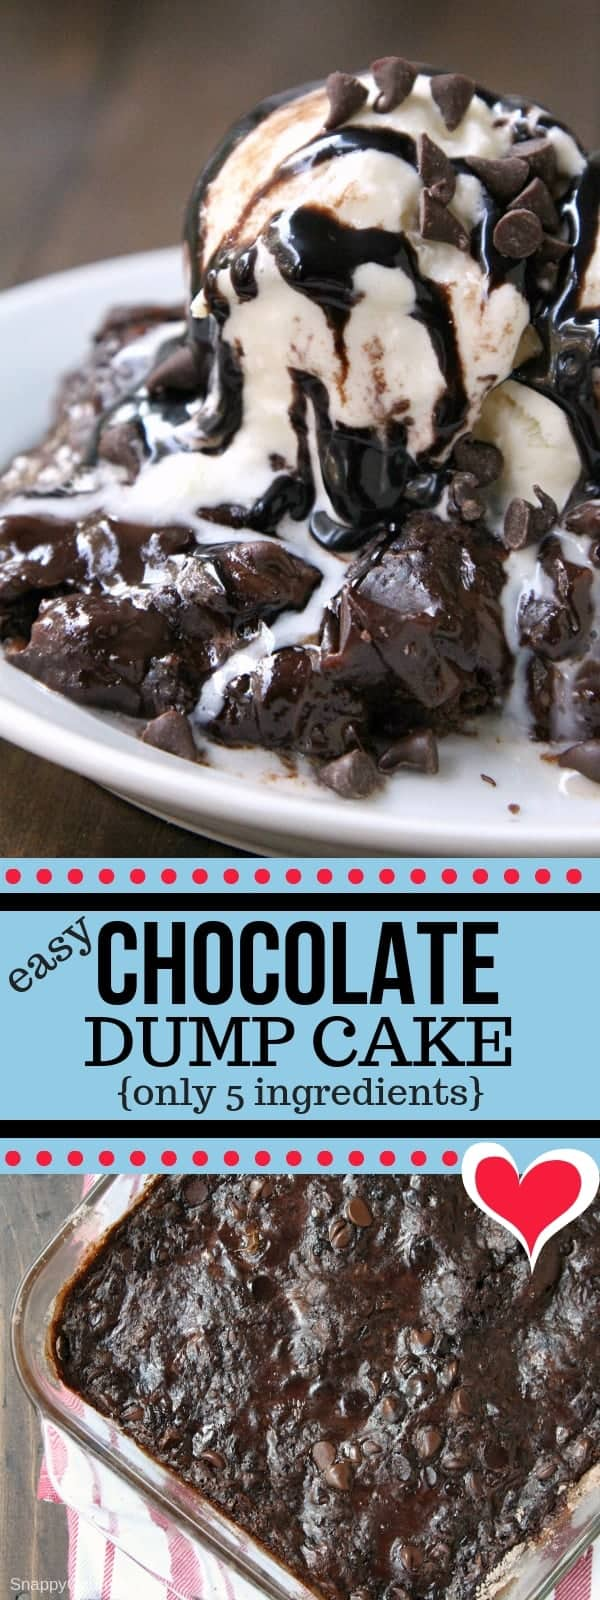 Chocolate Dump Cake, how to make a dump cake with a chocolate cake mix. This easy dump cake recipe only has 5 ingredients. The best! #Chocolate #Dessert #Recipes #SnappyGourmet #DumpCake #Easy #CakeMix